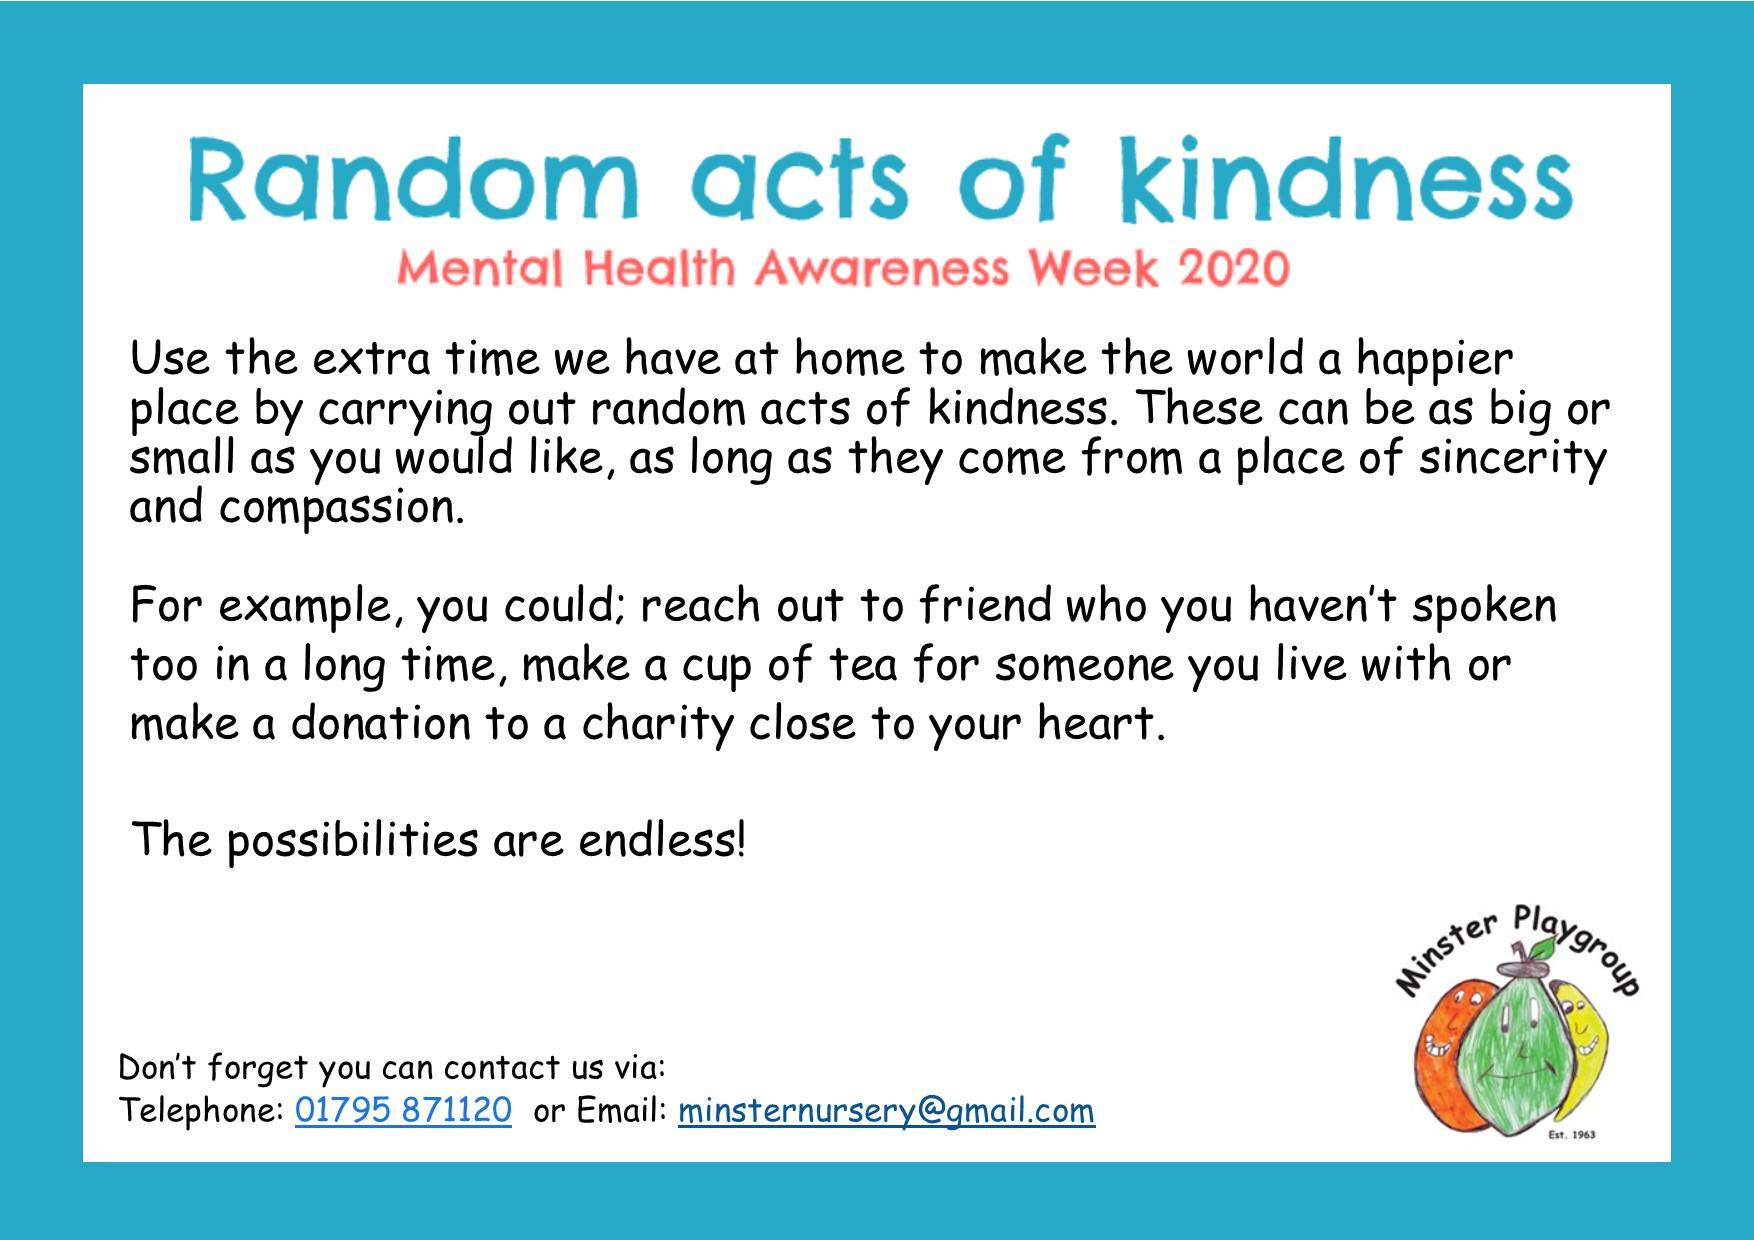 acts of kindness May 2020